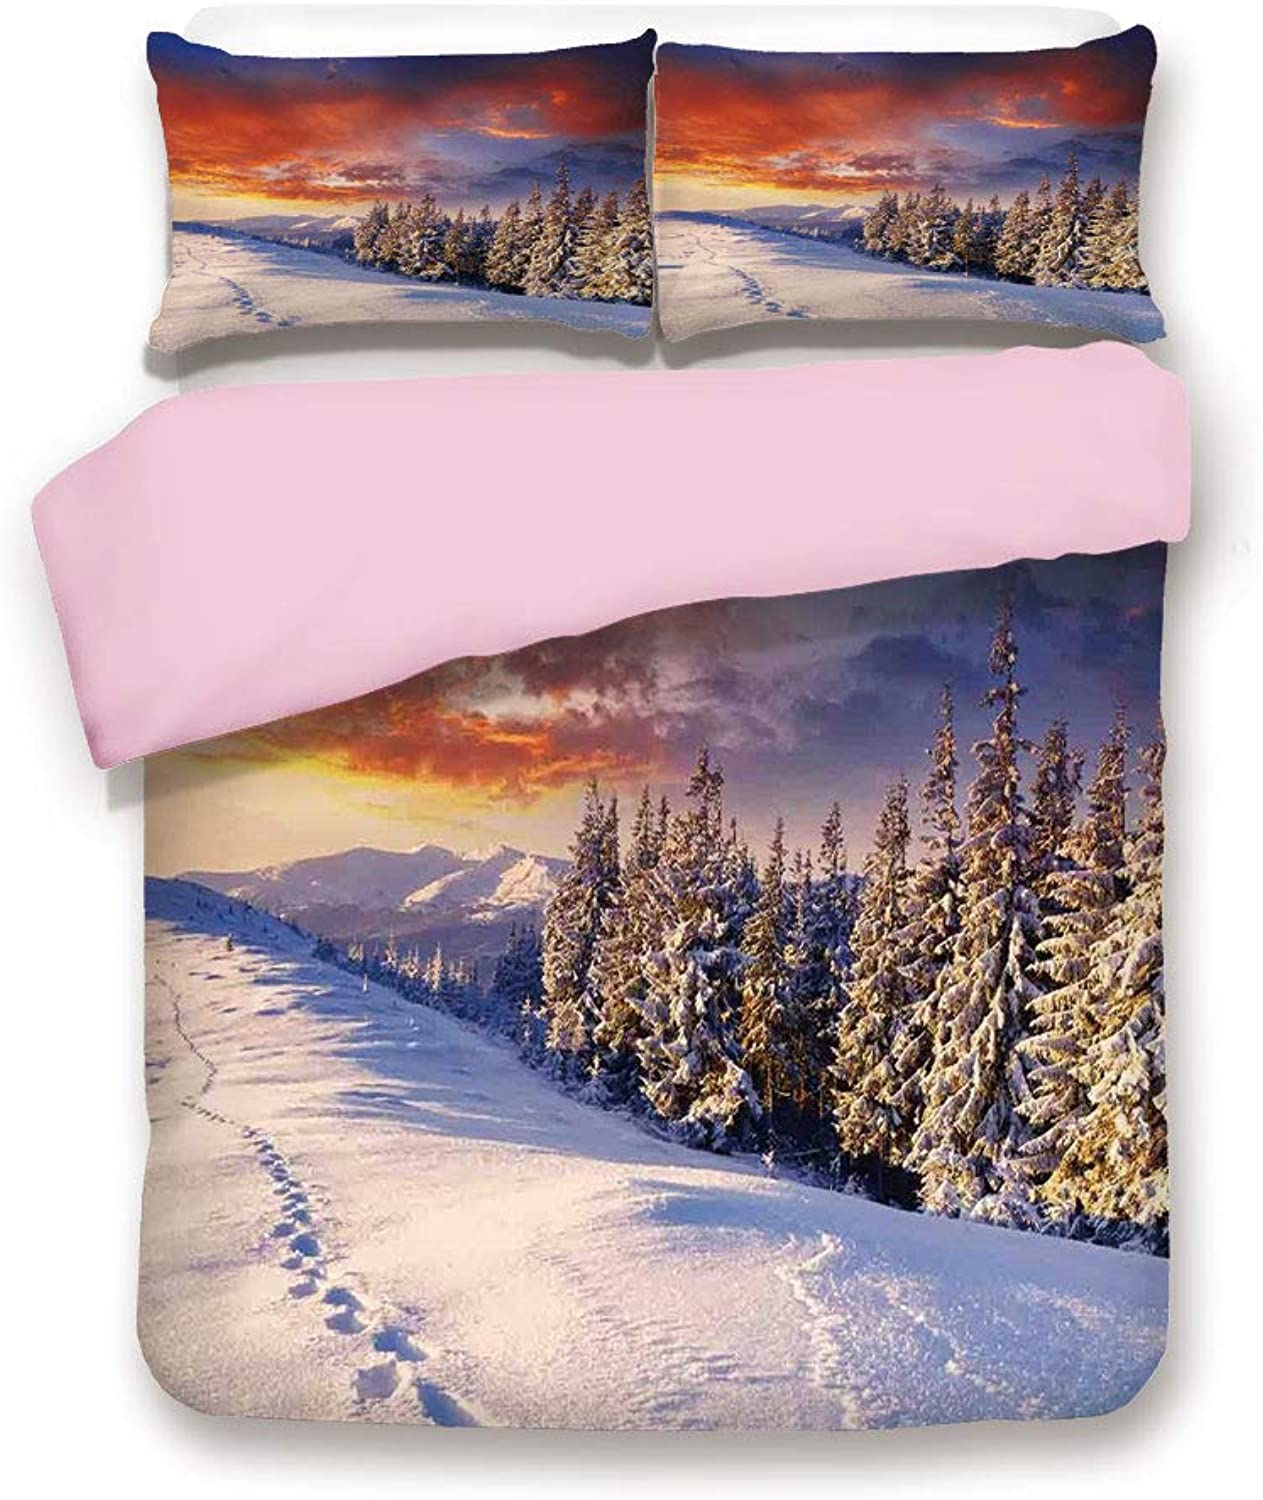 IPrint Pink Duvet Cover Set,Twin Size,Epic Cloudy Sky Over Majestic Mountains and Footsteps on Valley Decor,Decorative 3 Piece Bedding Set with 2 Pillow Sham,Best Gift for Girls Women,orange White